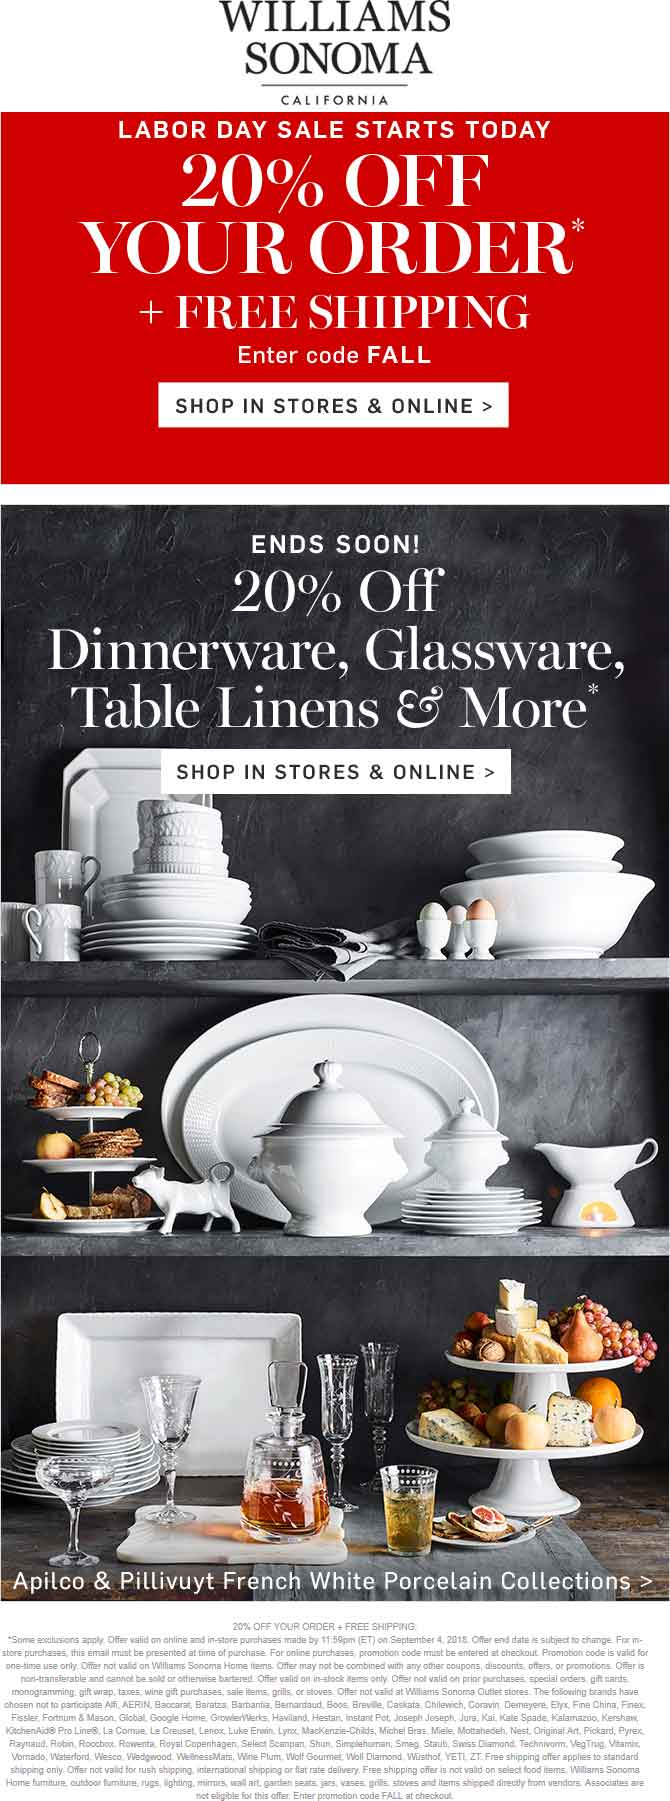 Williams Sonoma Coupon November 2019 20% off at Williams Sonoma, or online via promo code FALL